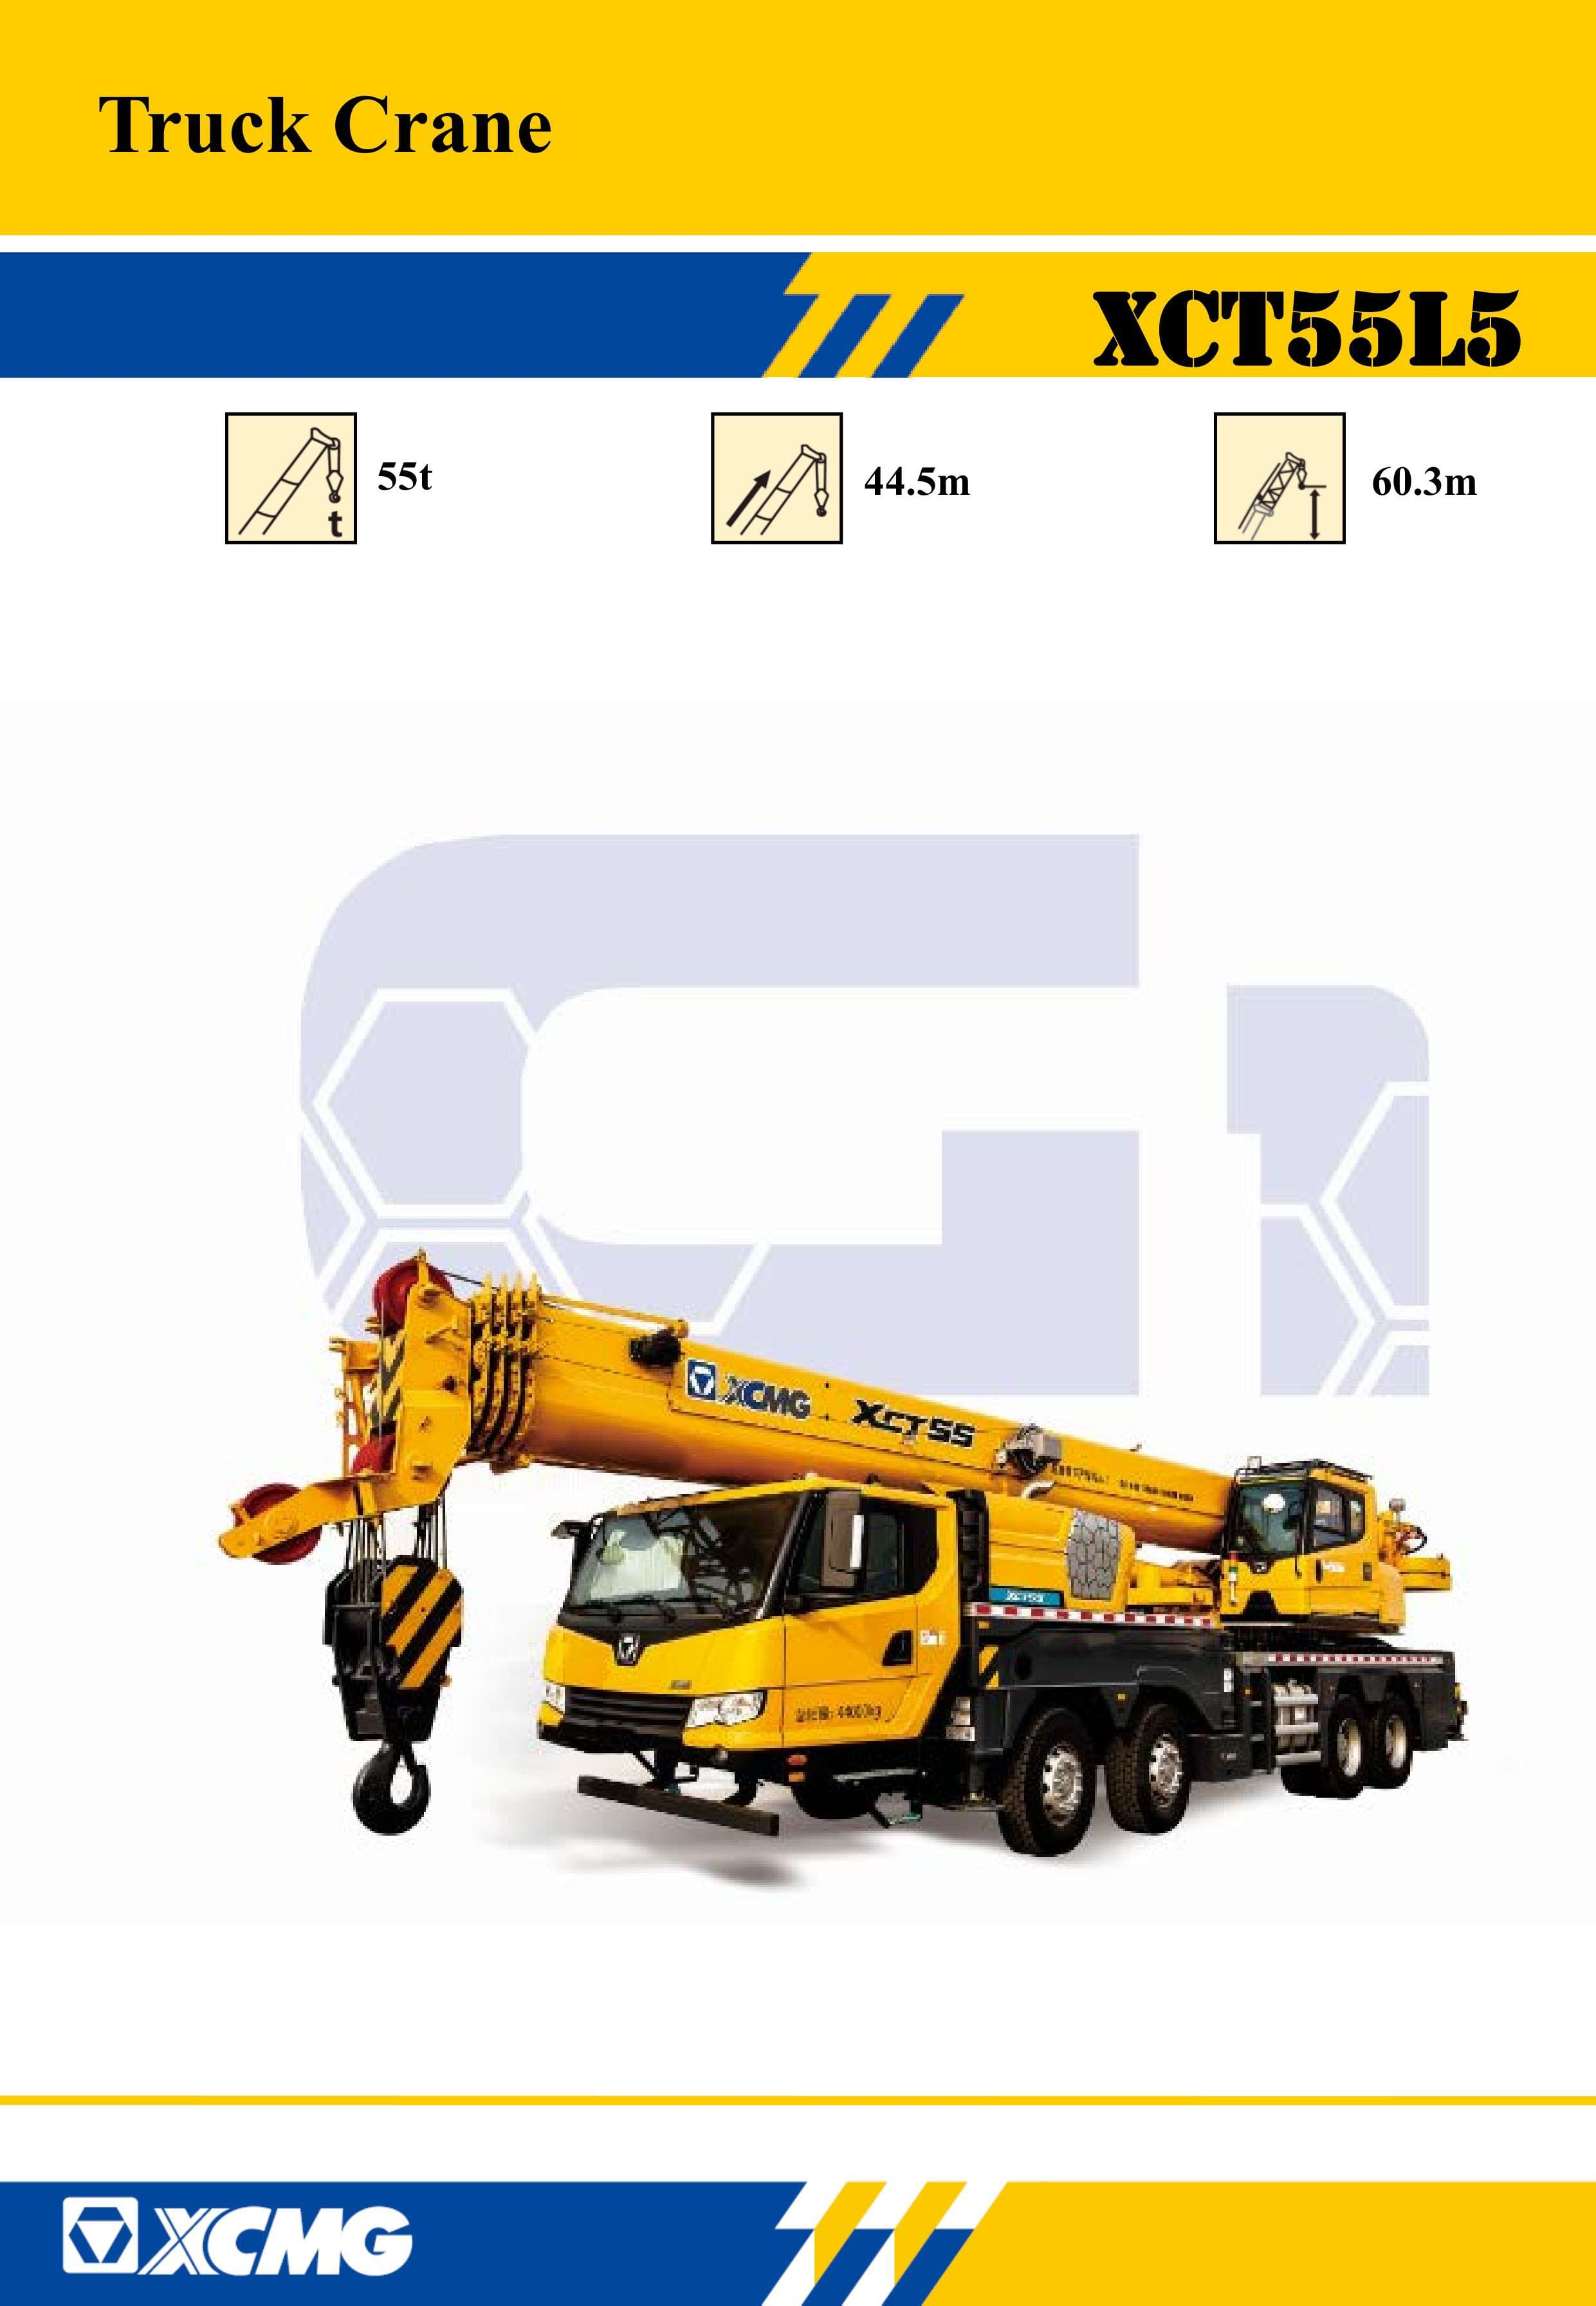 XCMG Official XCT55L5 Truck Crane for sale